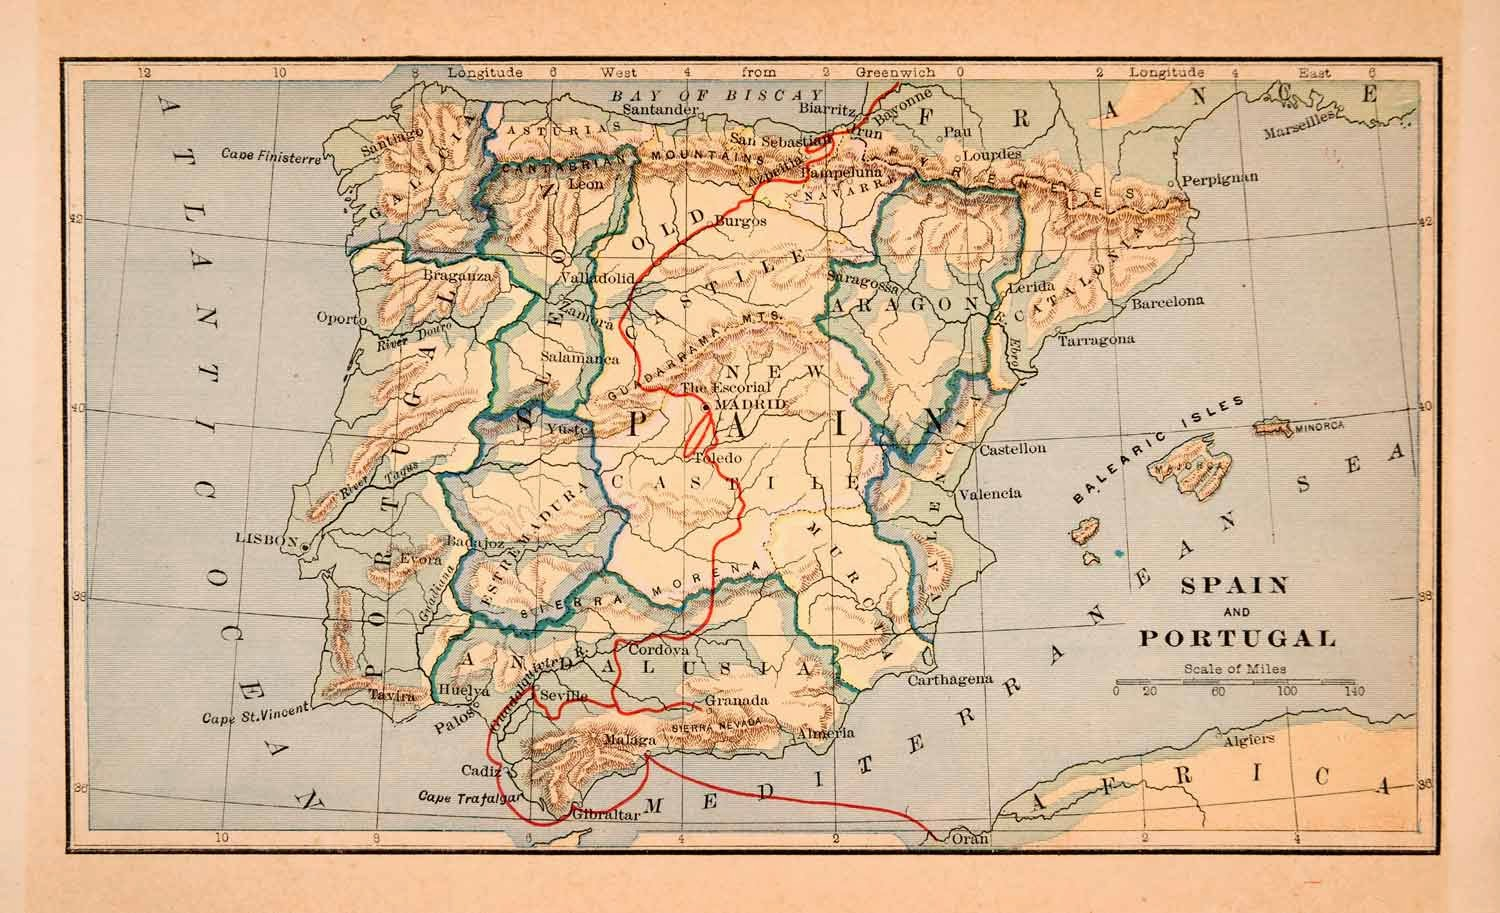 Spain and Portugal 1896